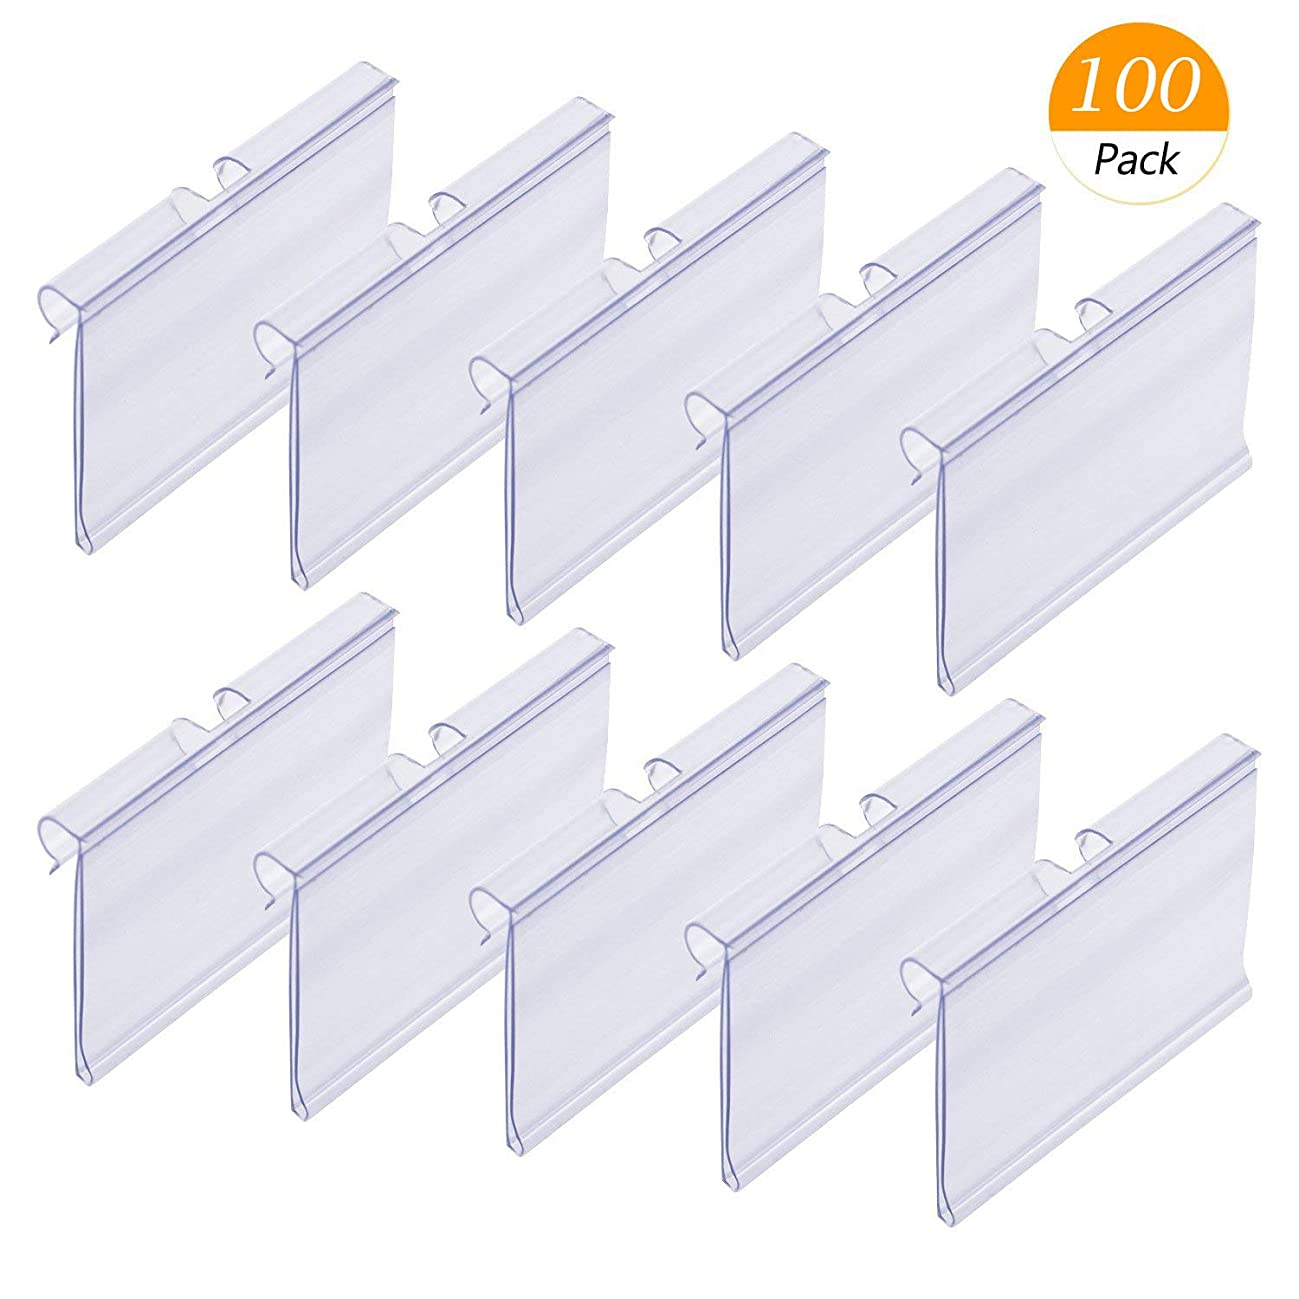 Counting Mars 100 Pack Plastic Wire Shelf Price Label Holders Merchandise Display Sign Display Holder (6cm x 4.2cm), Clear